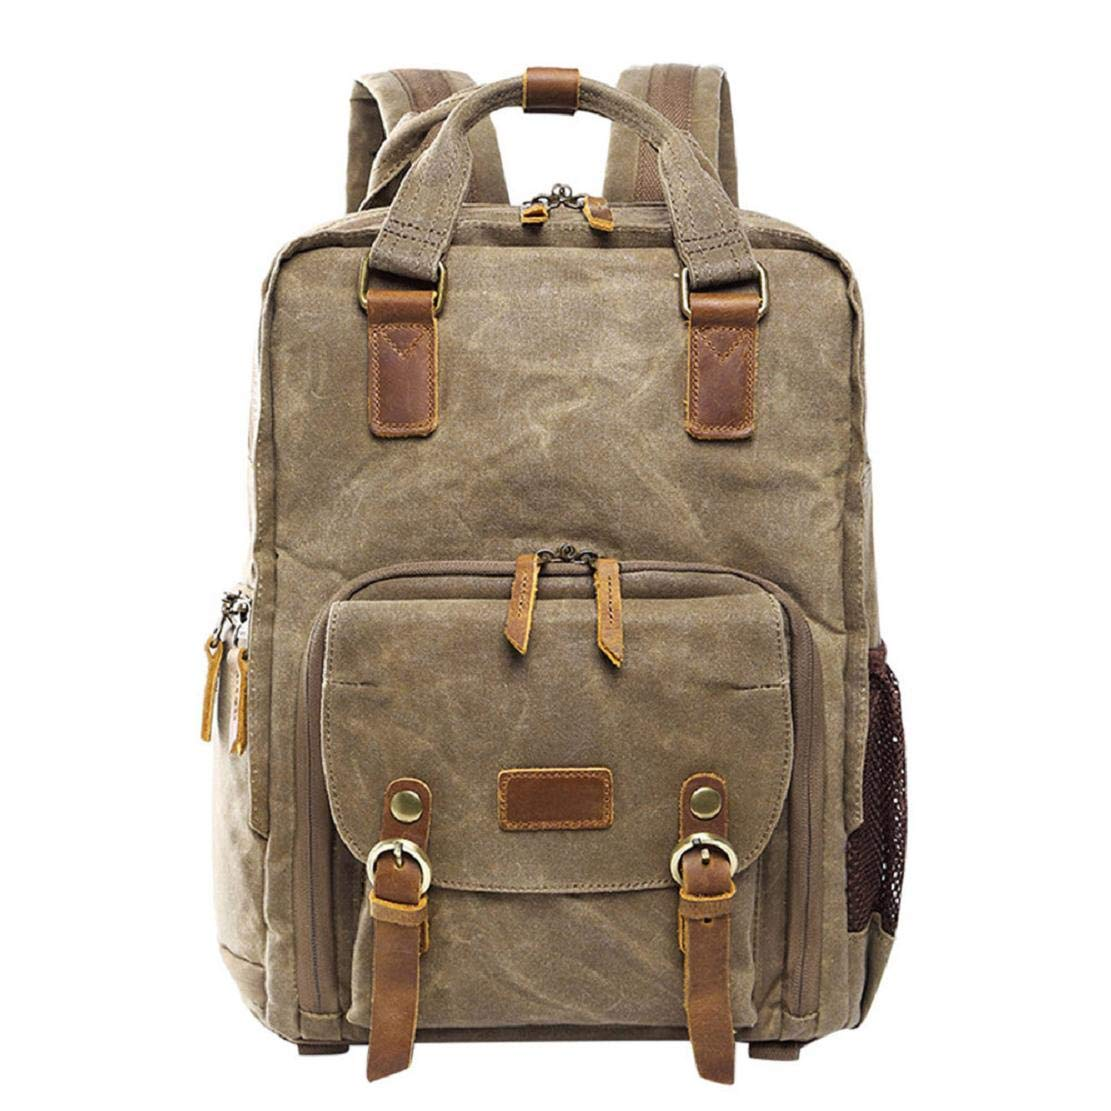 Photography Lens Camera Backpack Waterproof Canvas Bag Laptop and Accessories for Outdoor Travel Hiking by Lowprofile